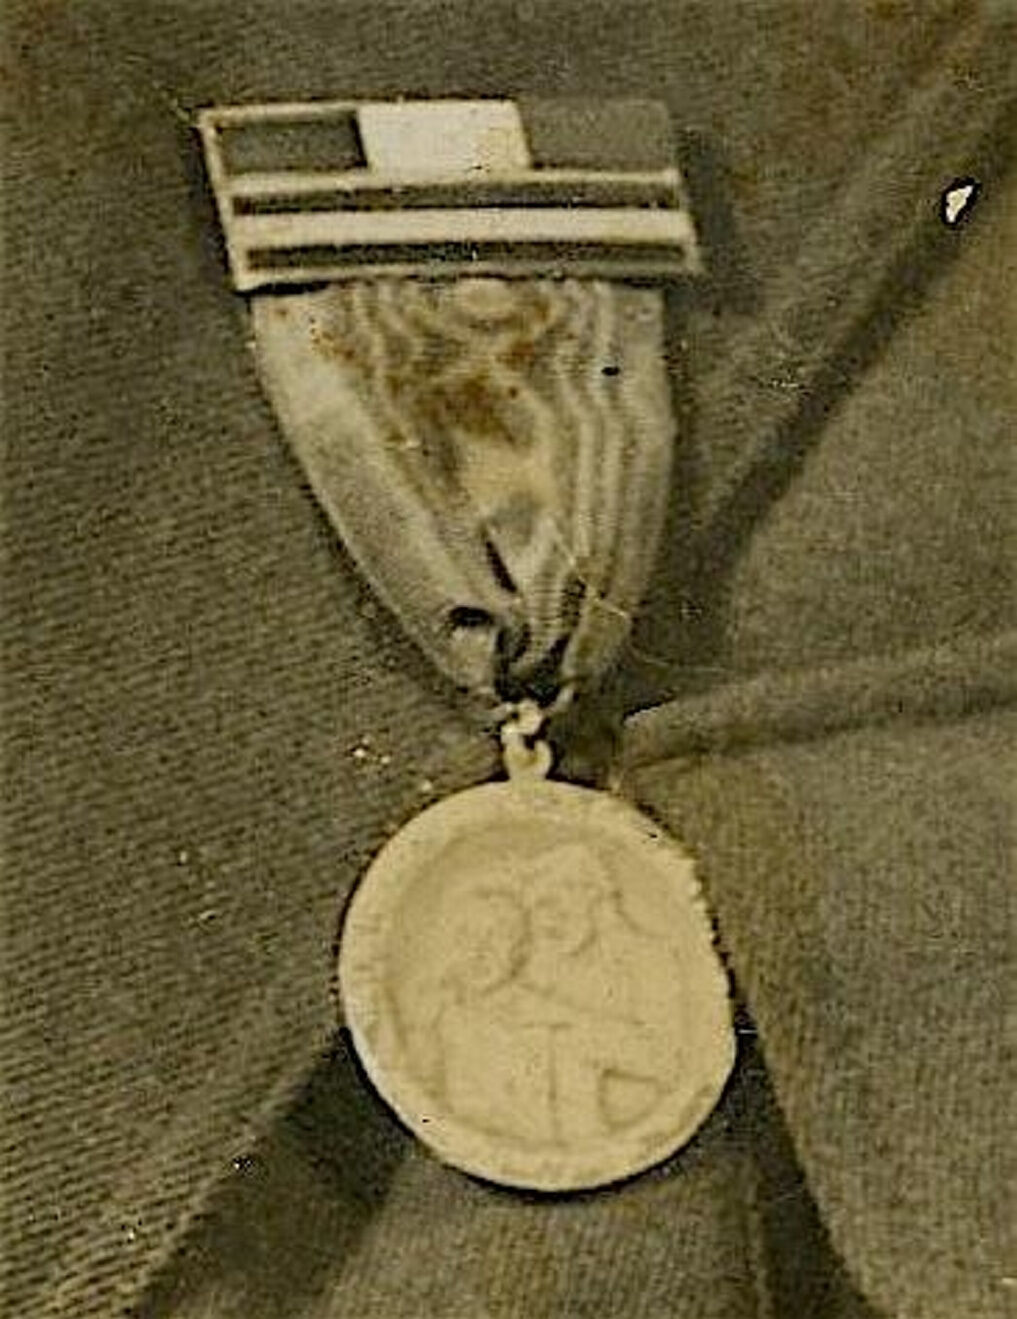 Police search for missing medal